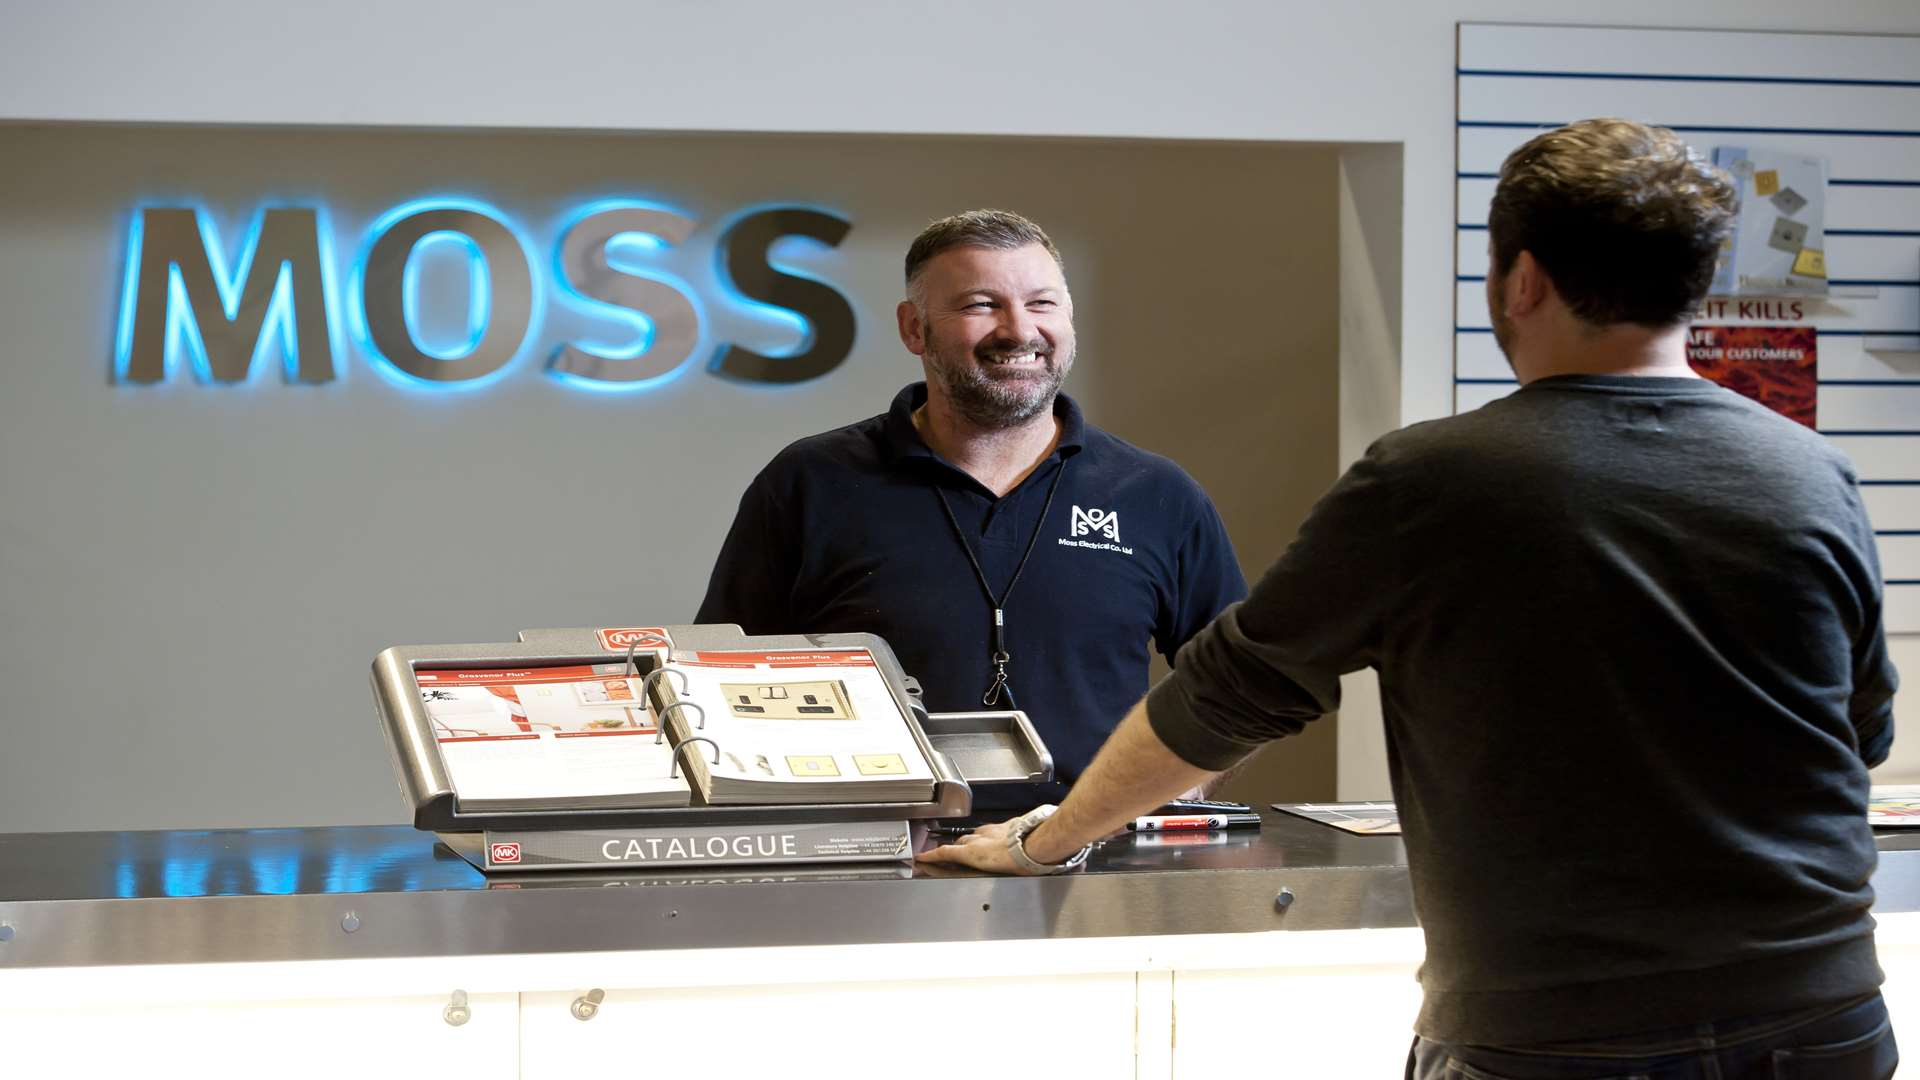 Moss Electrical is based in Dartford